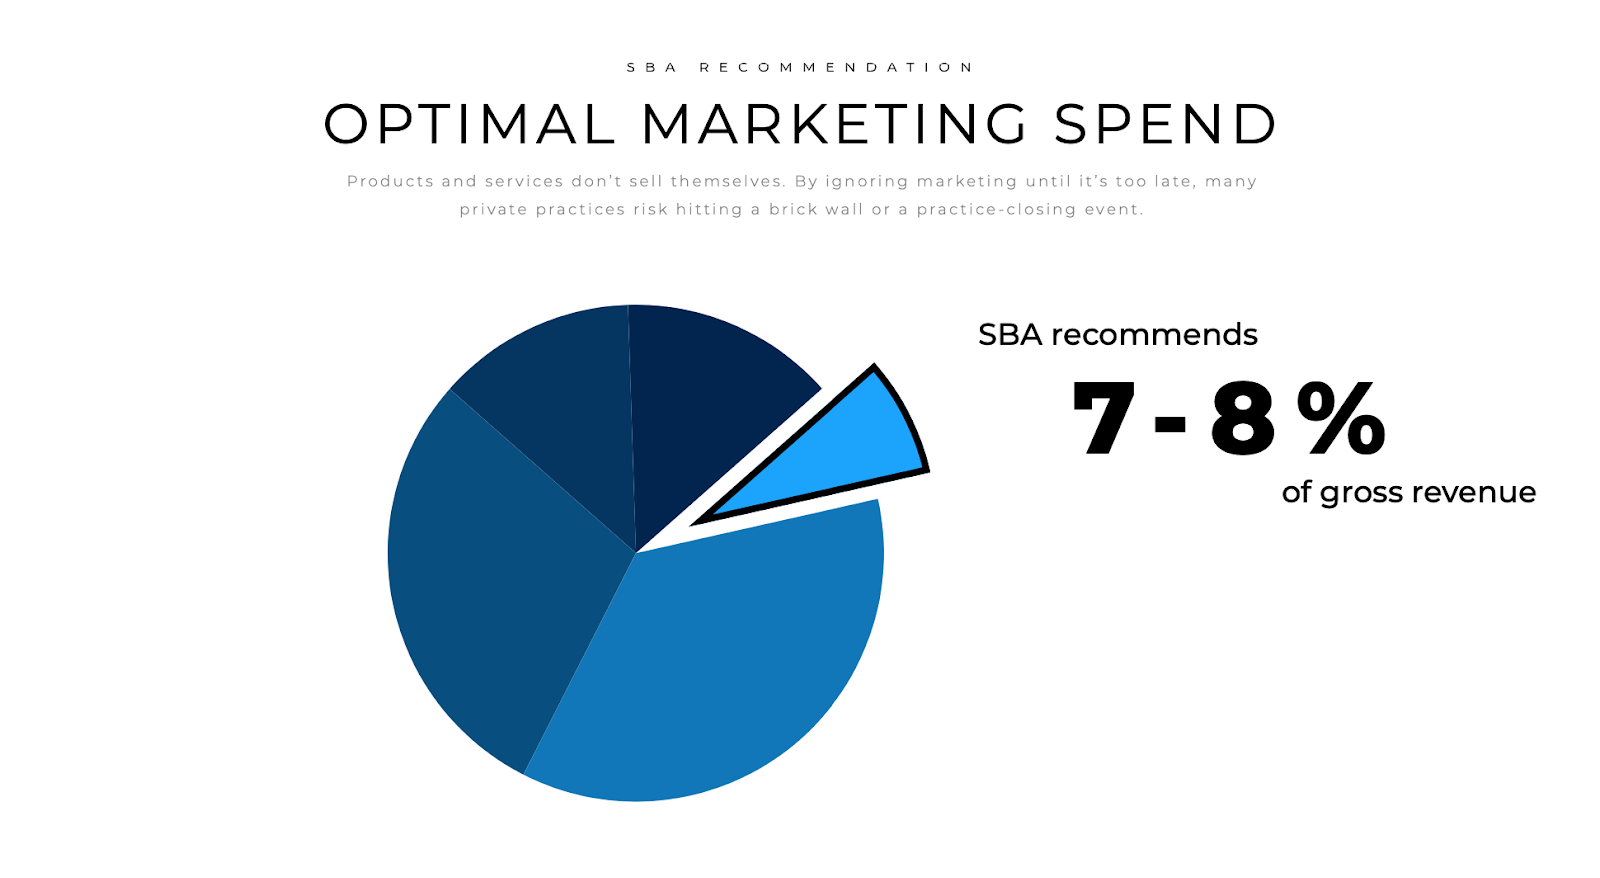 Pie chart showing the SBA recommendation of 7-8% of gross revenue for businesses under $5 million per year.